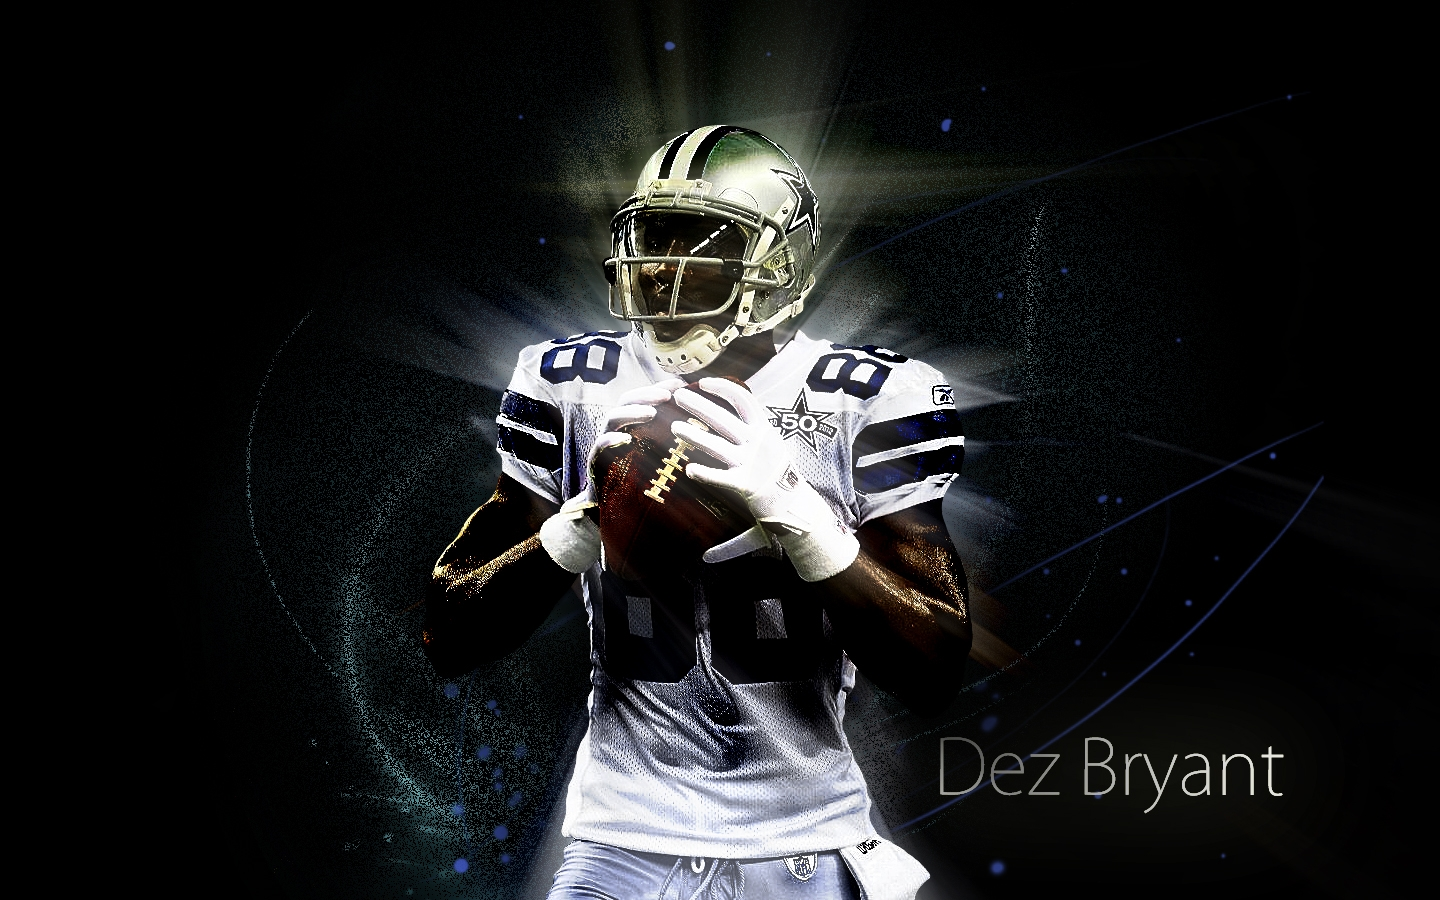 Dez Bryant Wallpapers   HD Wallpapers   Pinterest   Search and Dez